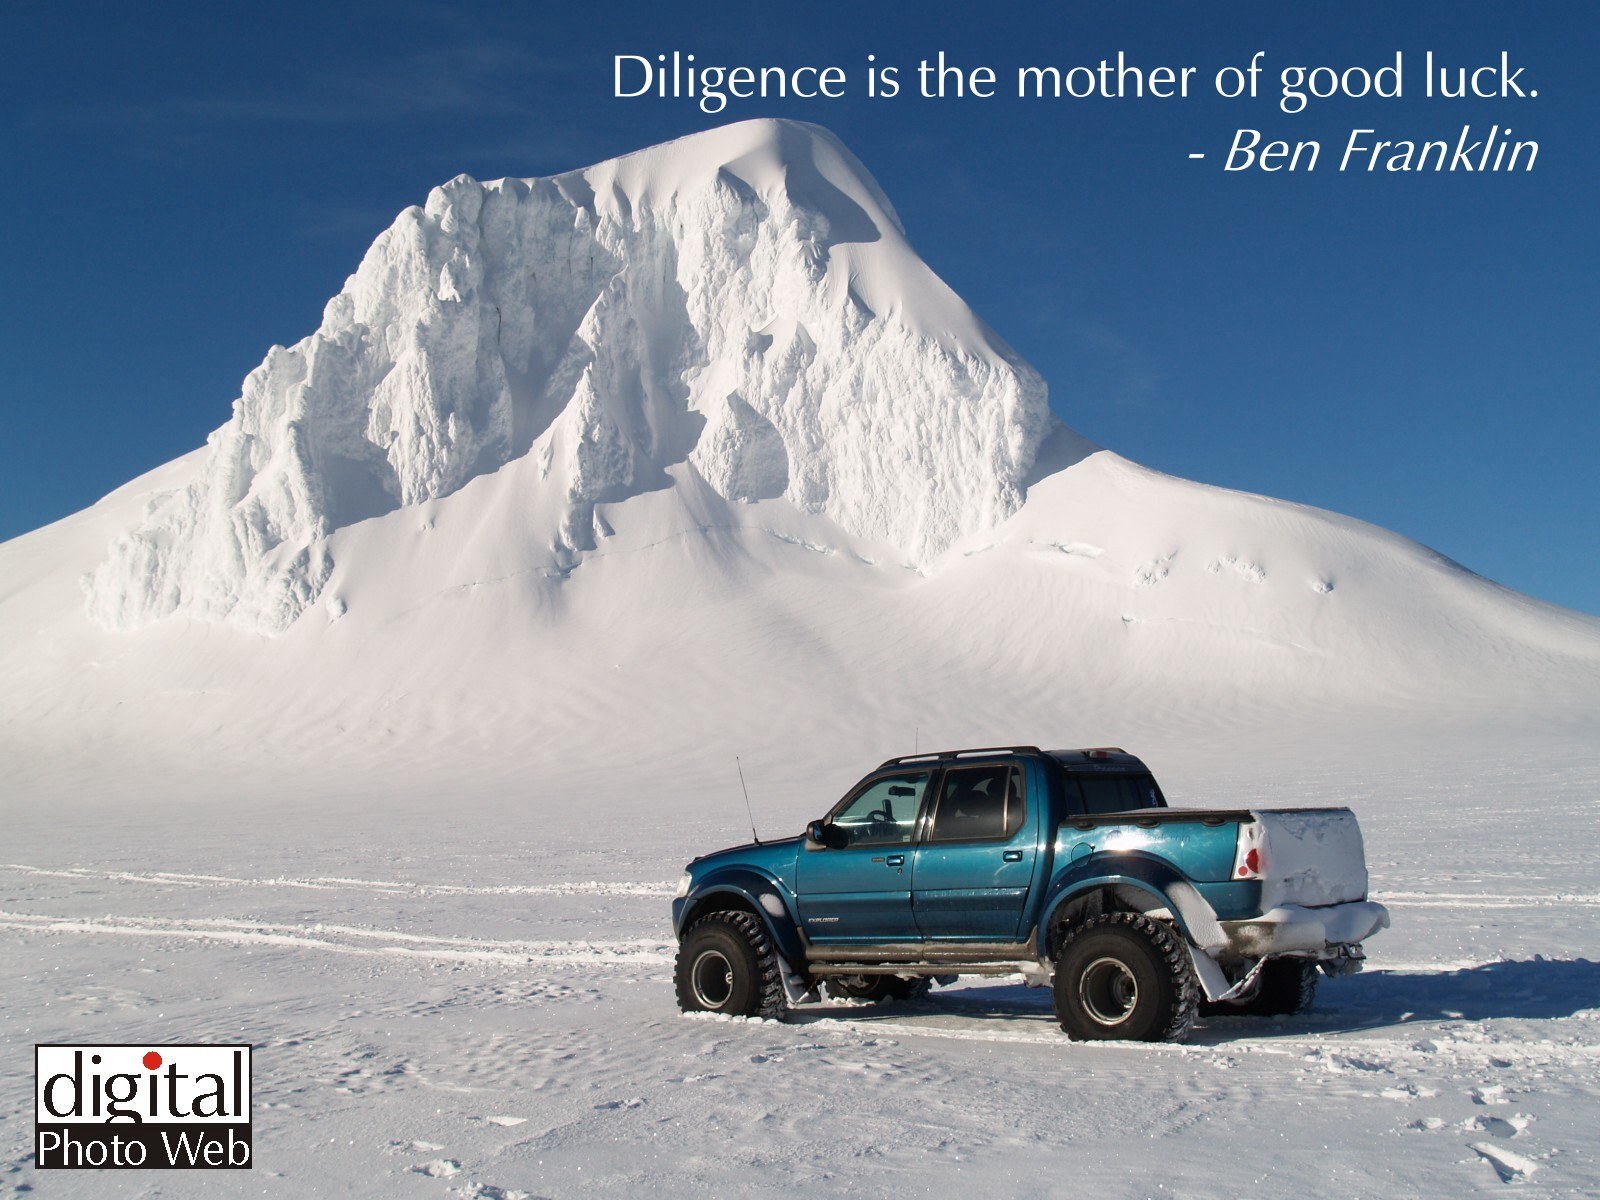 Free Truck Wallpaper Photos with Inspiring Quotations